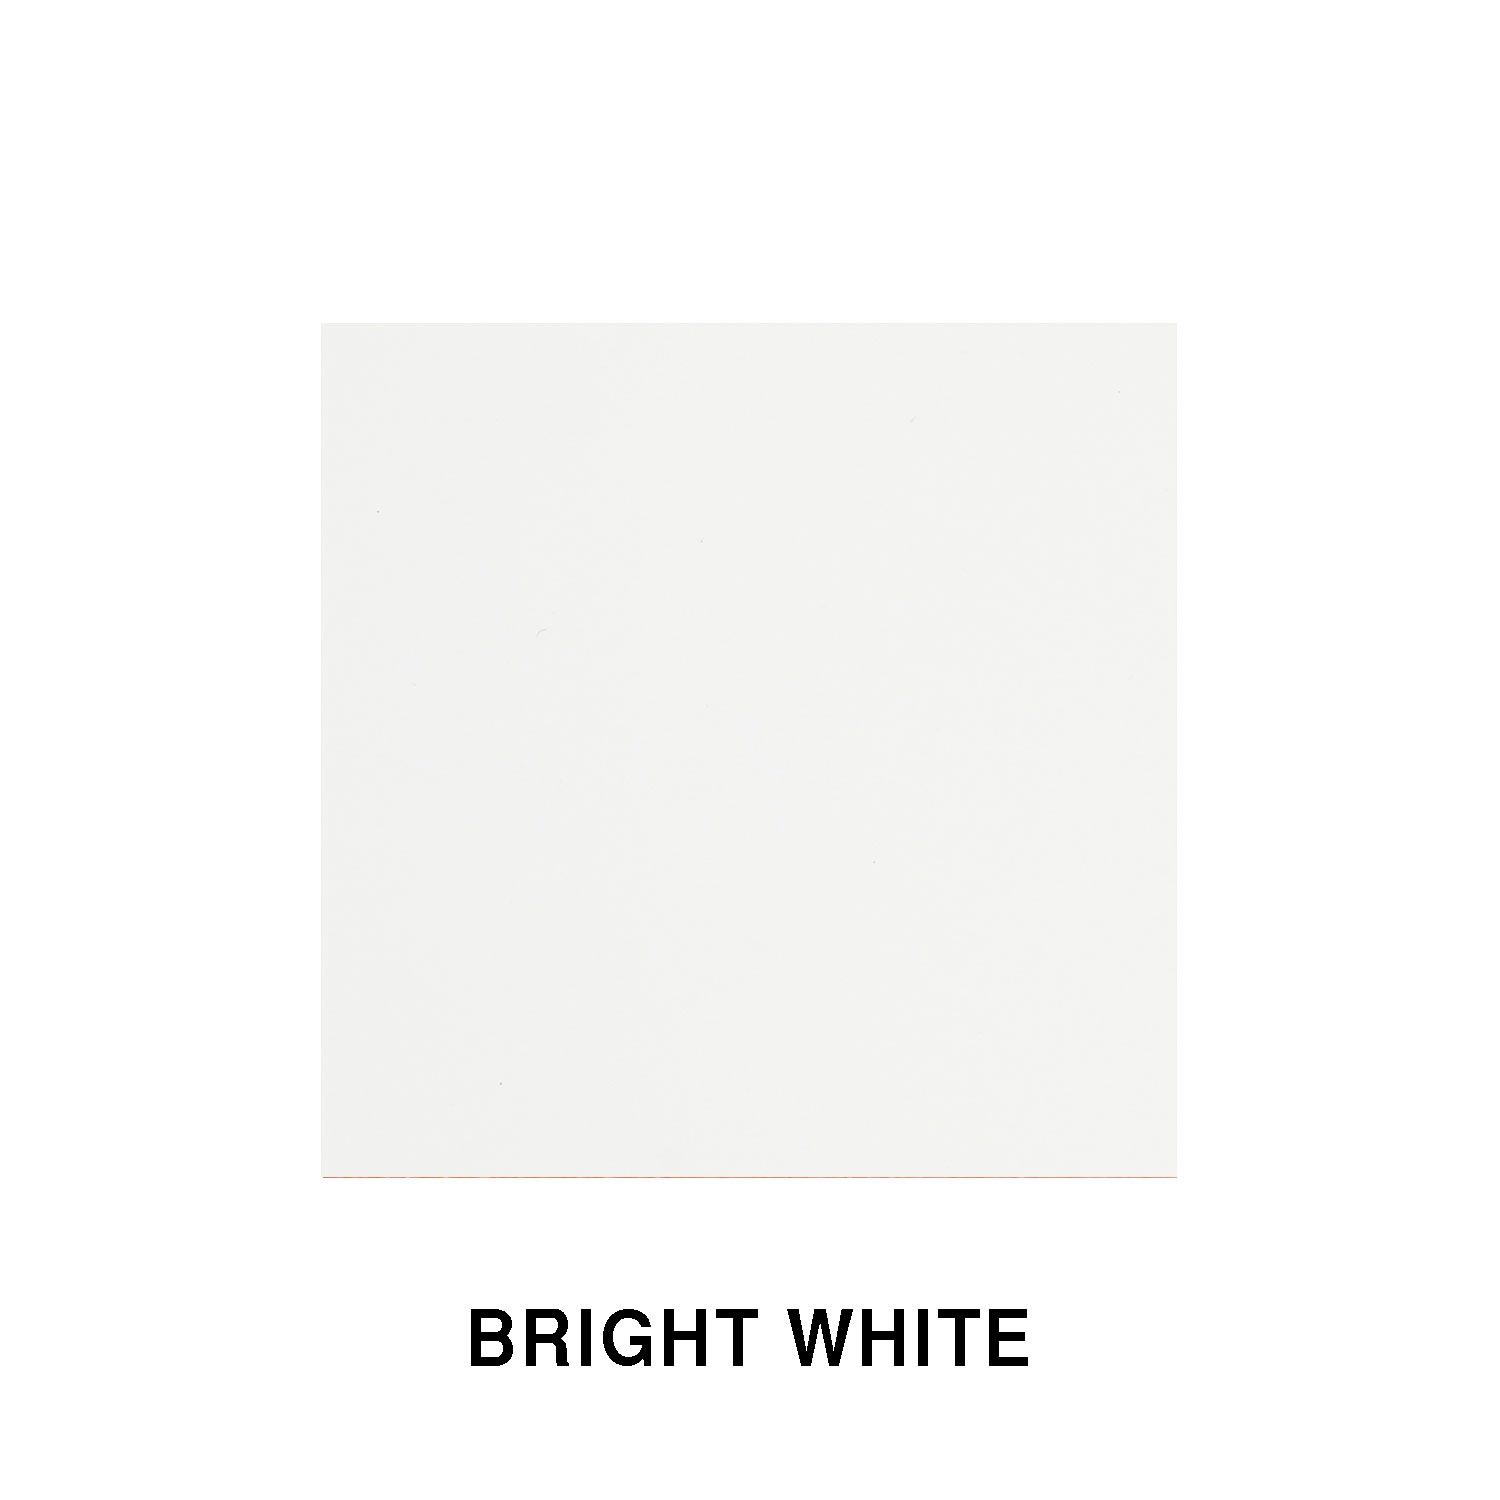 Bright White Fiberglass Finish